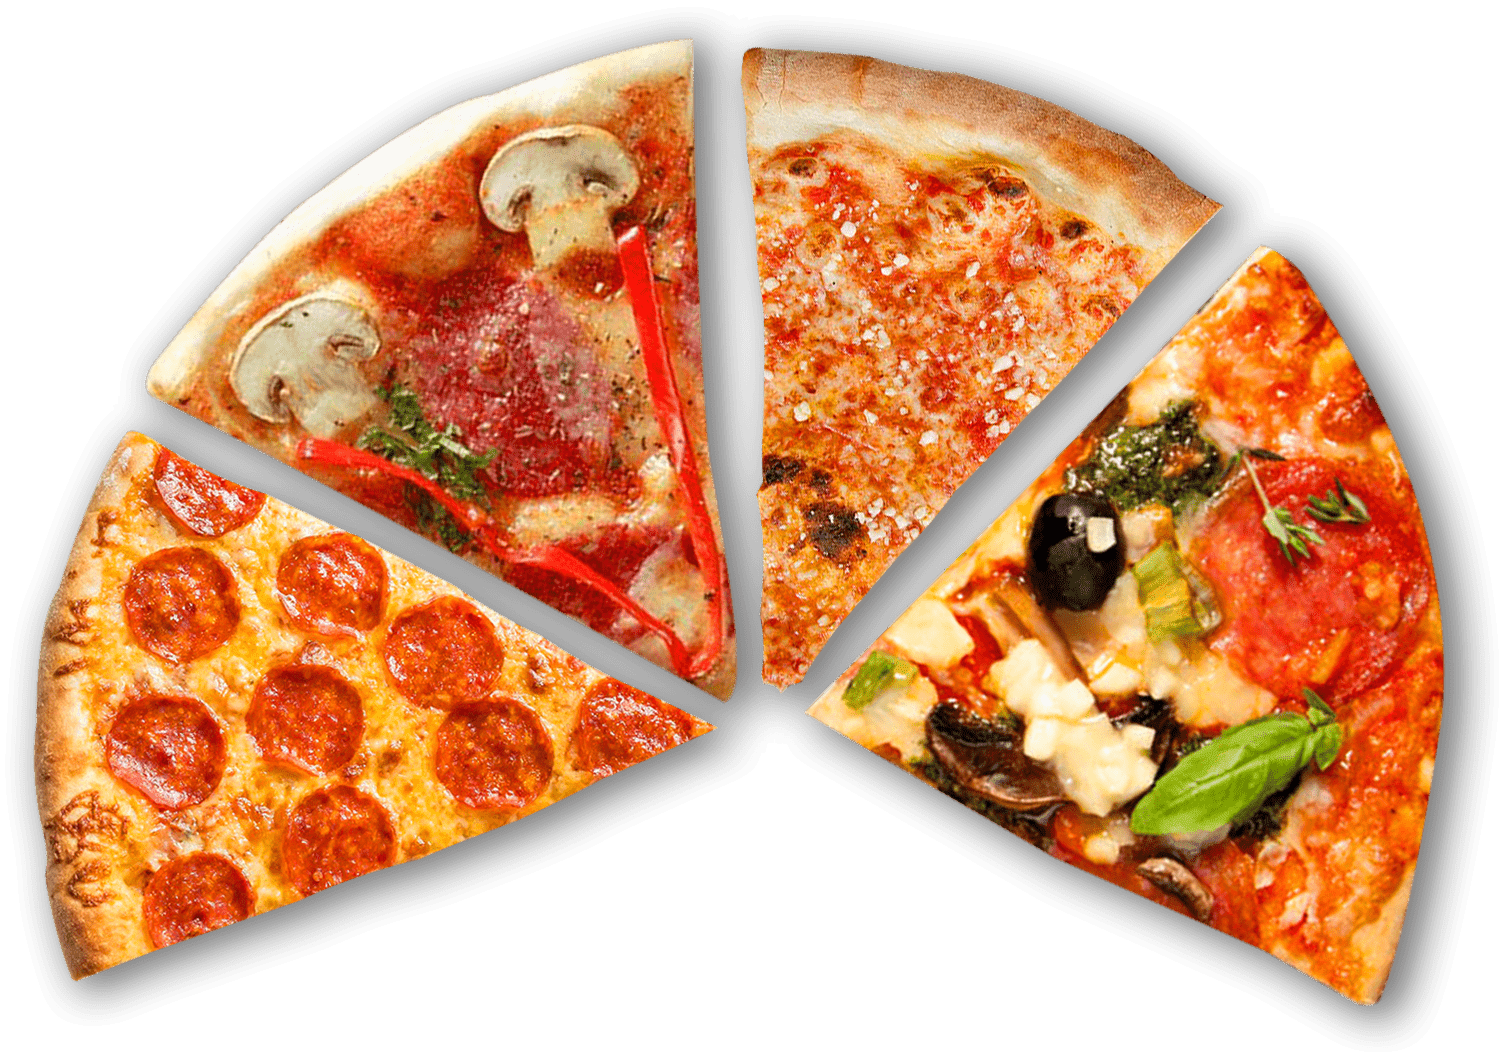 Pizza Slice Images Pizza Sicilian Pizza Italian Cuisine Cuisine Fast Food Free Png Images Eat Food Pizza